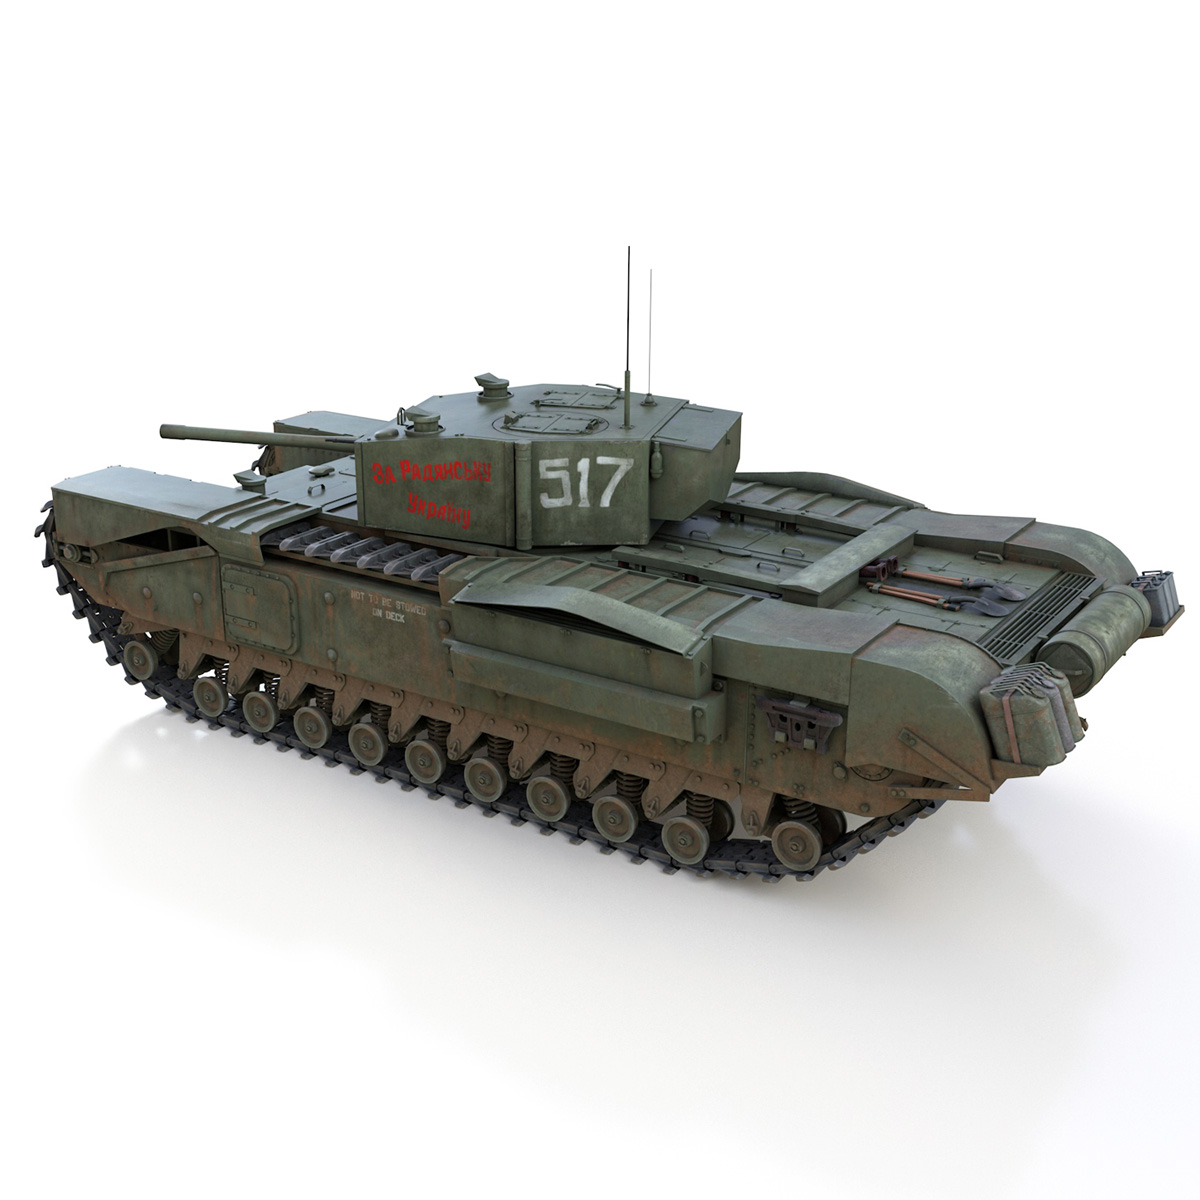 churchill mk iii - 517 - soviet army 3d загвар 3ds fbx c4d lwo obj 272977